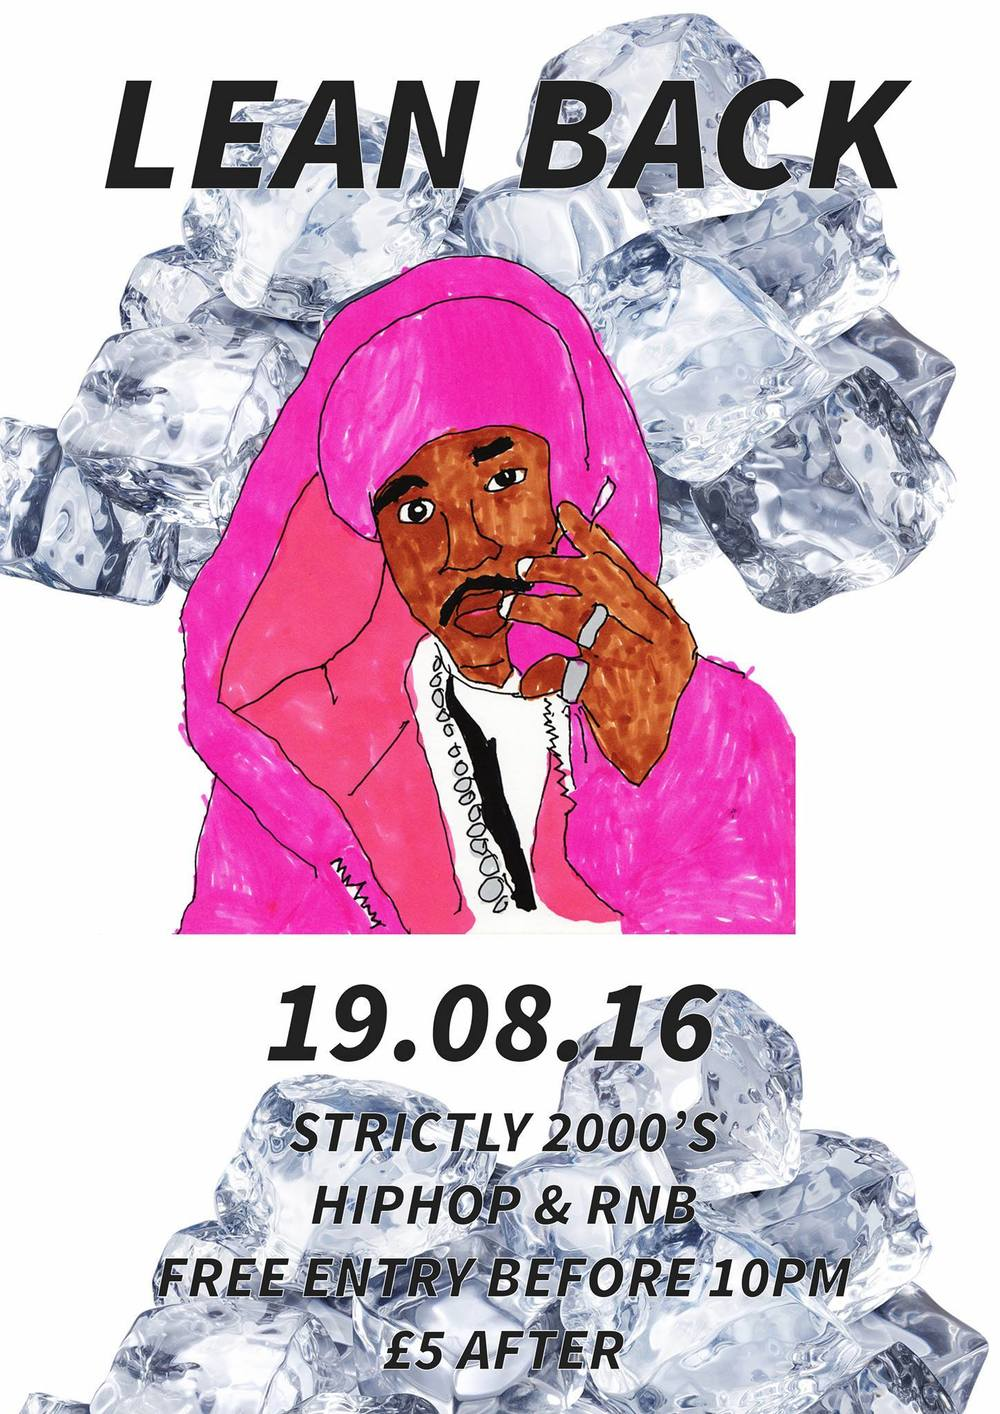 Hey! Think 2000s Think MTV Think music videos Think the best hip hop & rnb in this ~GOLDEN~ era FREE b4 10pm £5 after all night - bring ID DJs oh annie oh&William Michael& friends Simples!